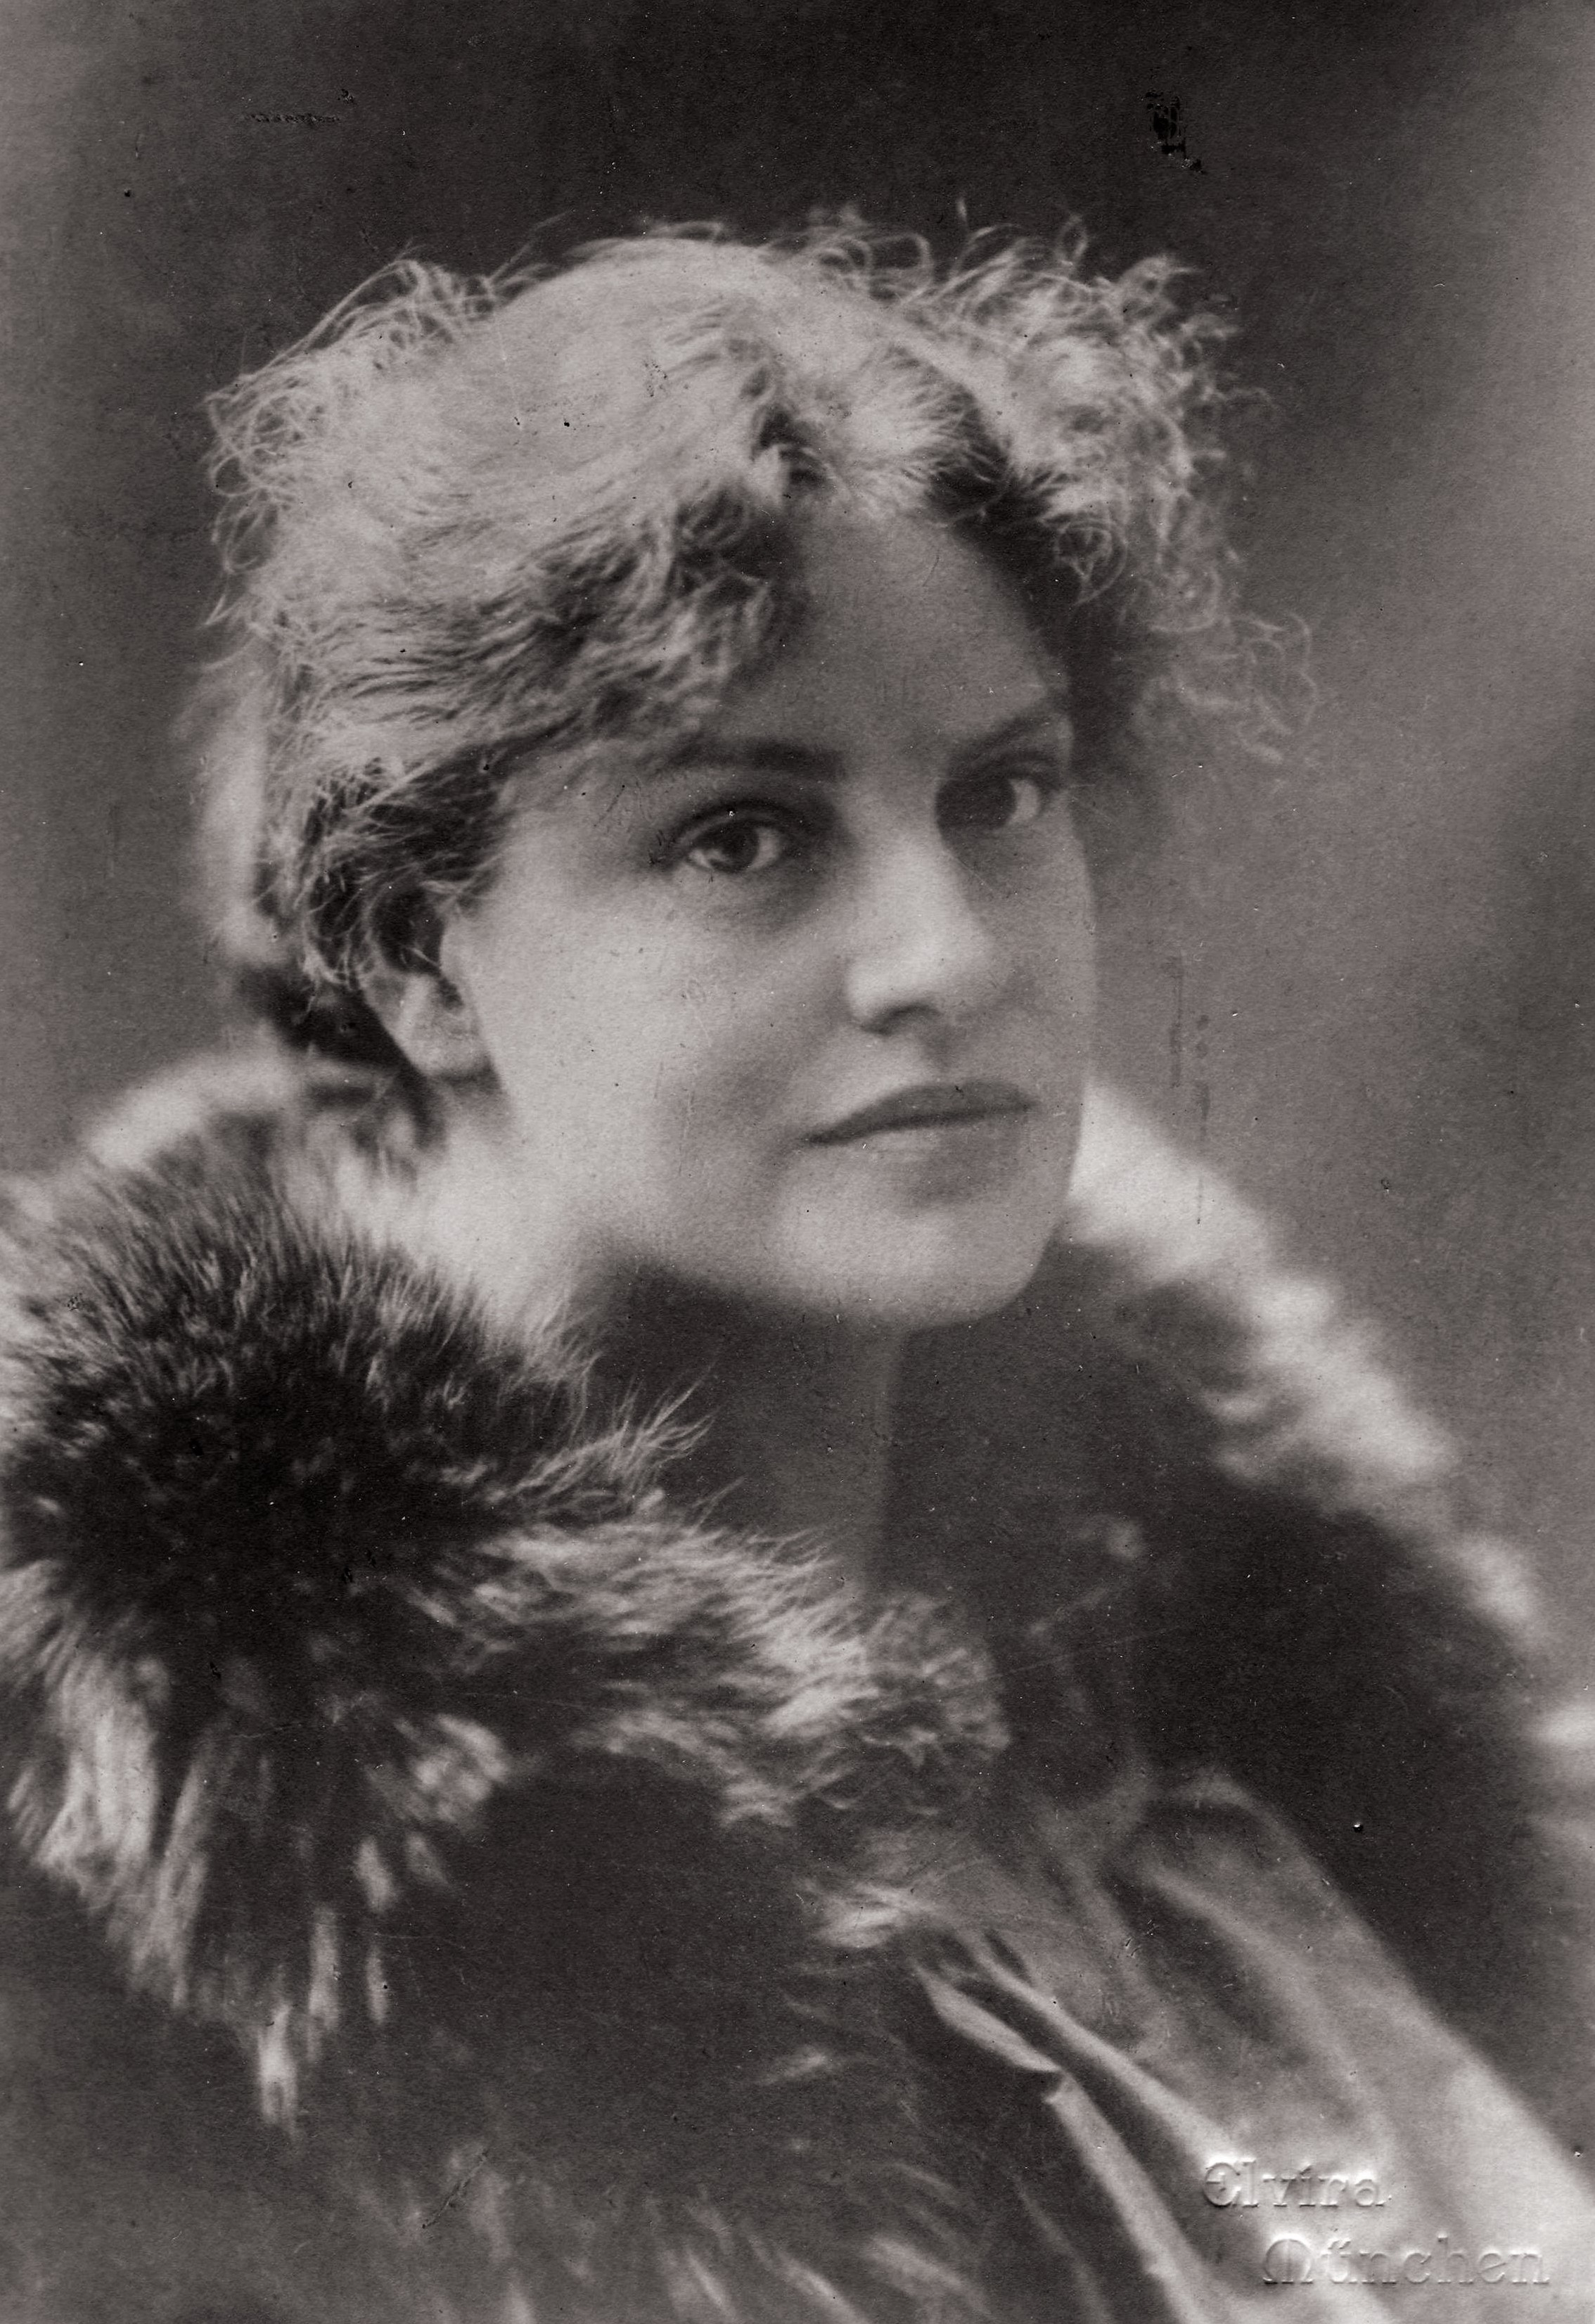 Lou Andreas-Salomé in 1914